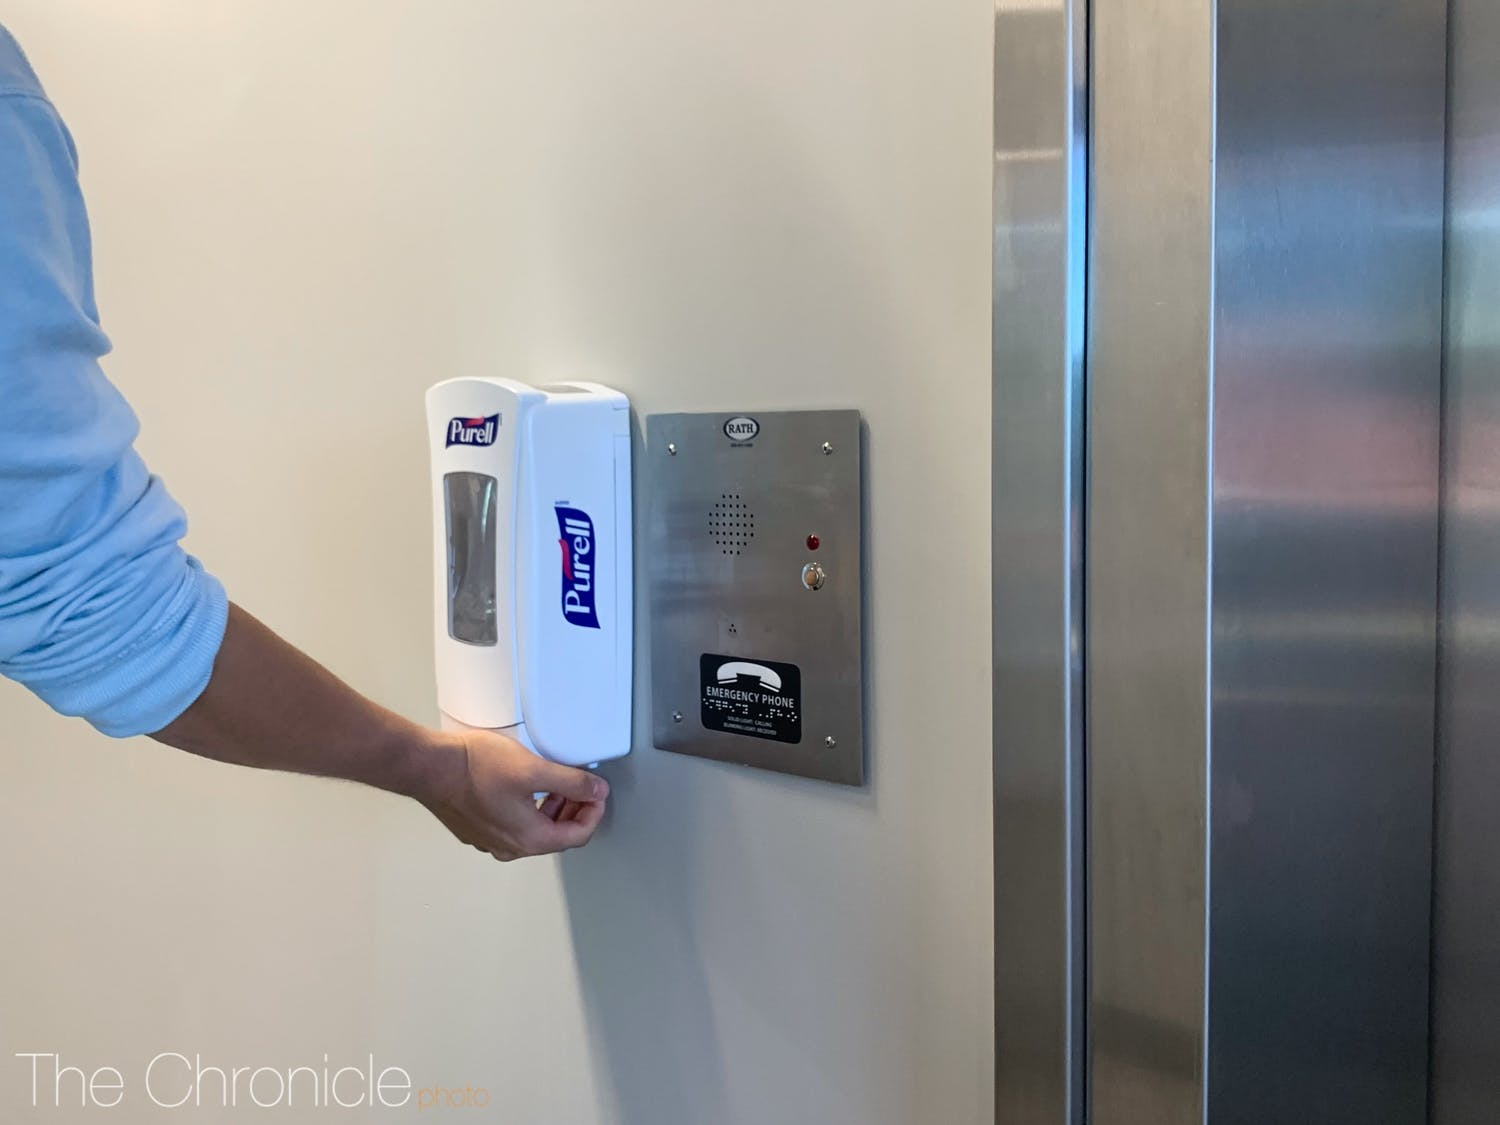 Duke has increased the number of hand sanitizer dispensers on campus from 1,000 to 1,700.